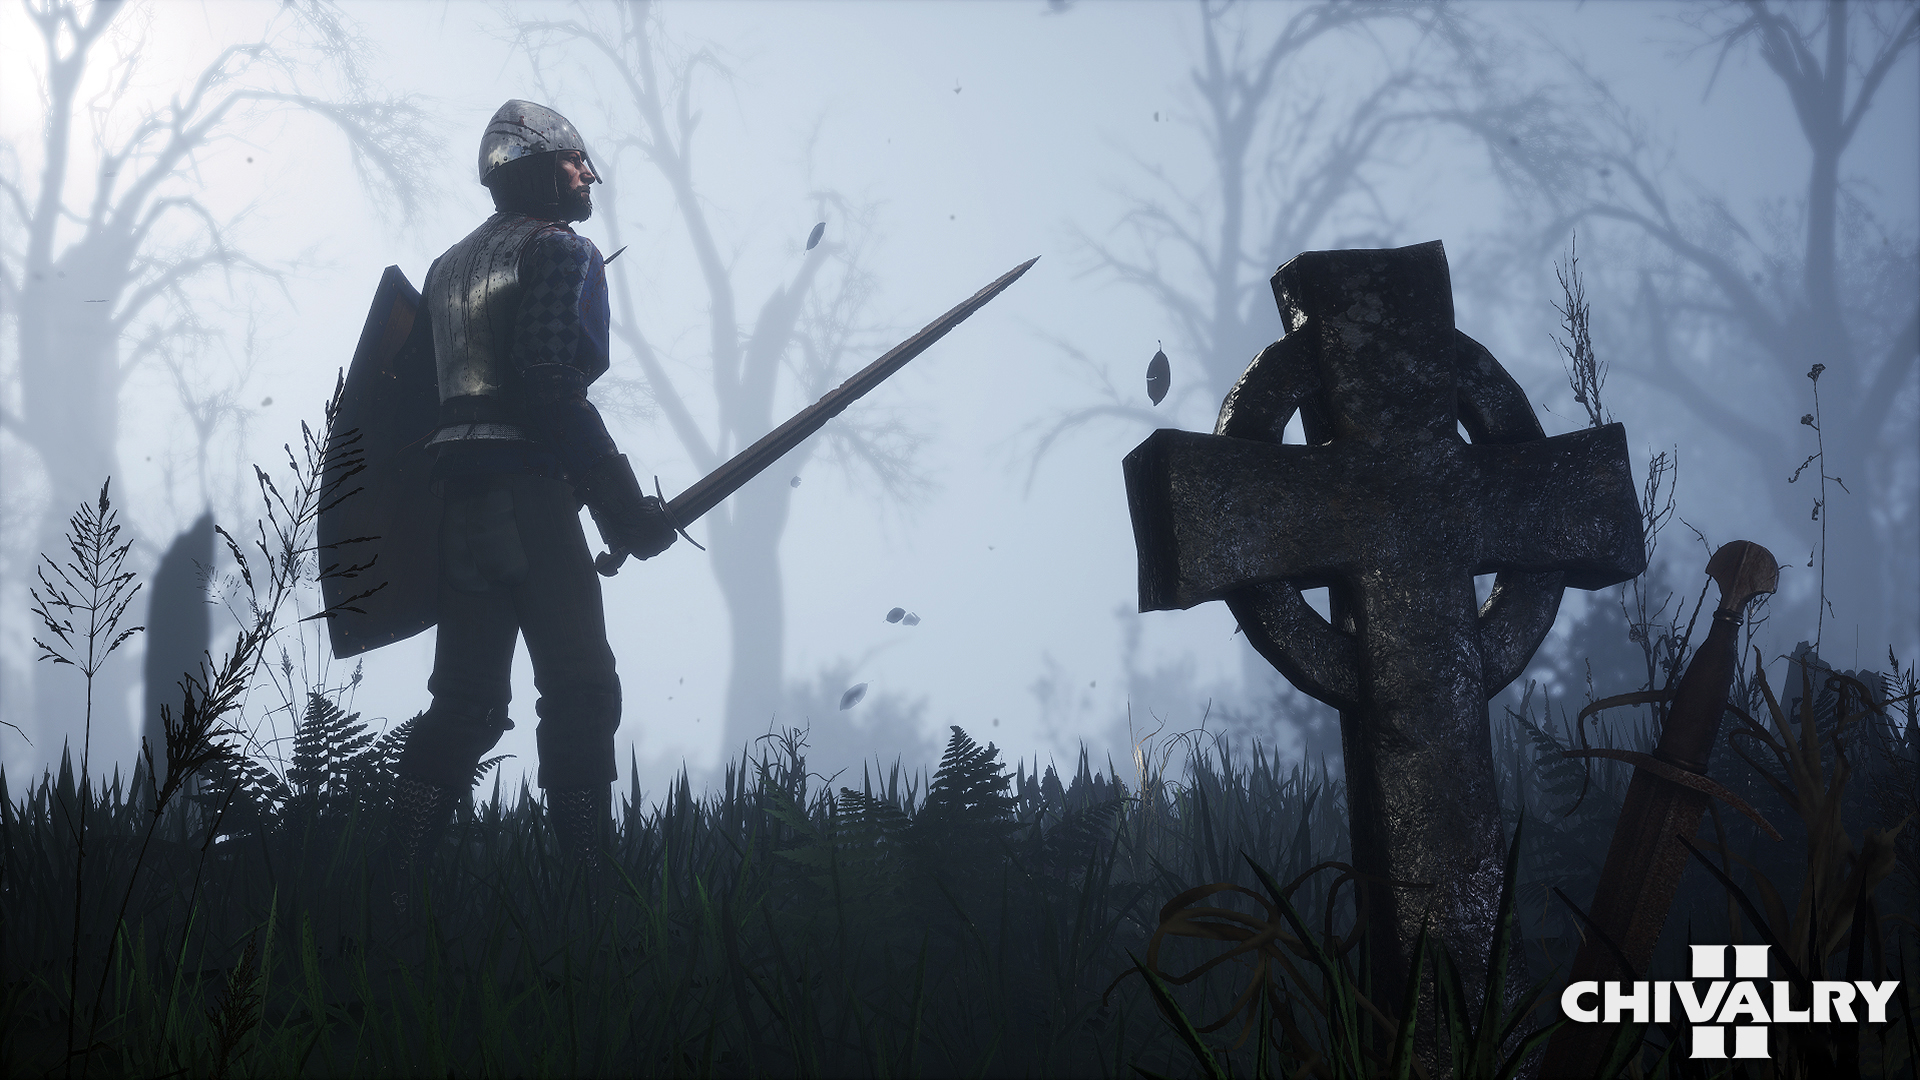 Chivalry 2 is launching on next-gen consoles (but only because it's been delayed) screenshot